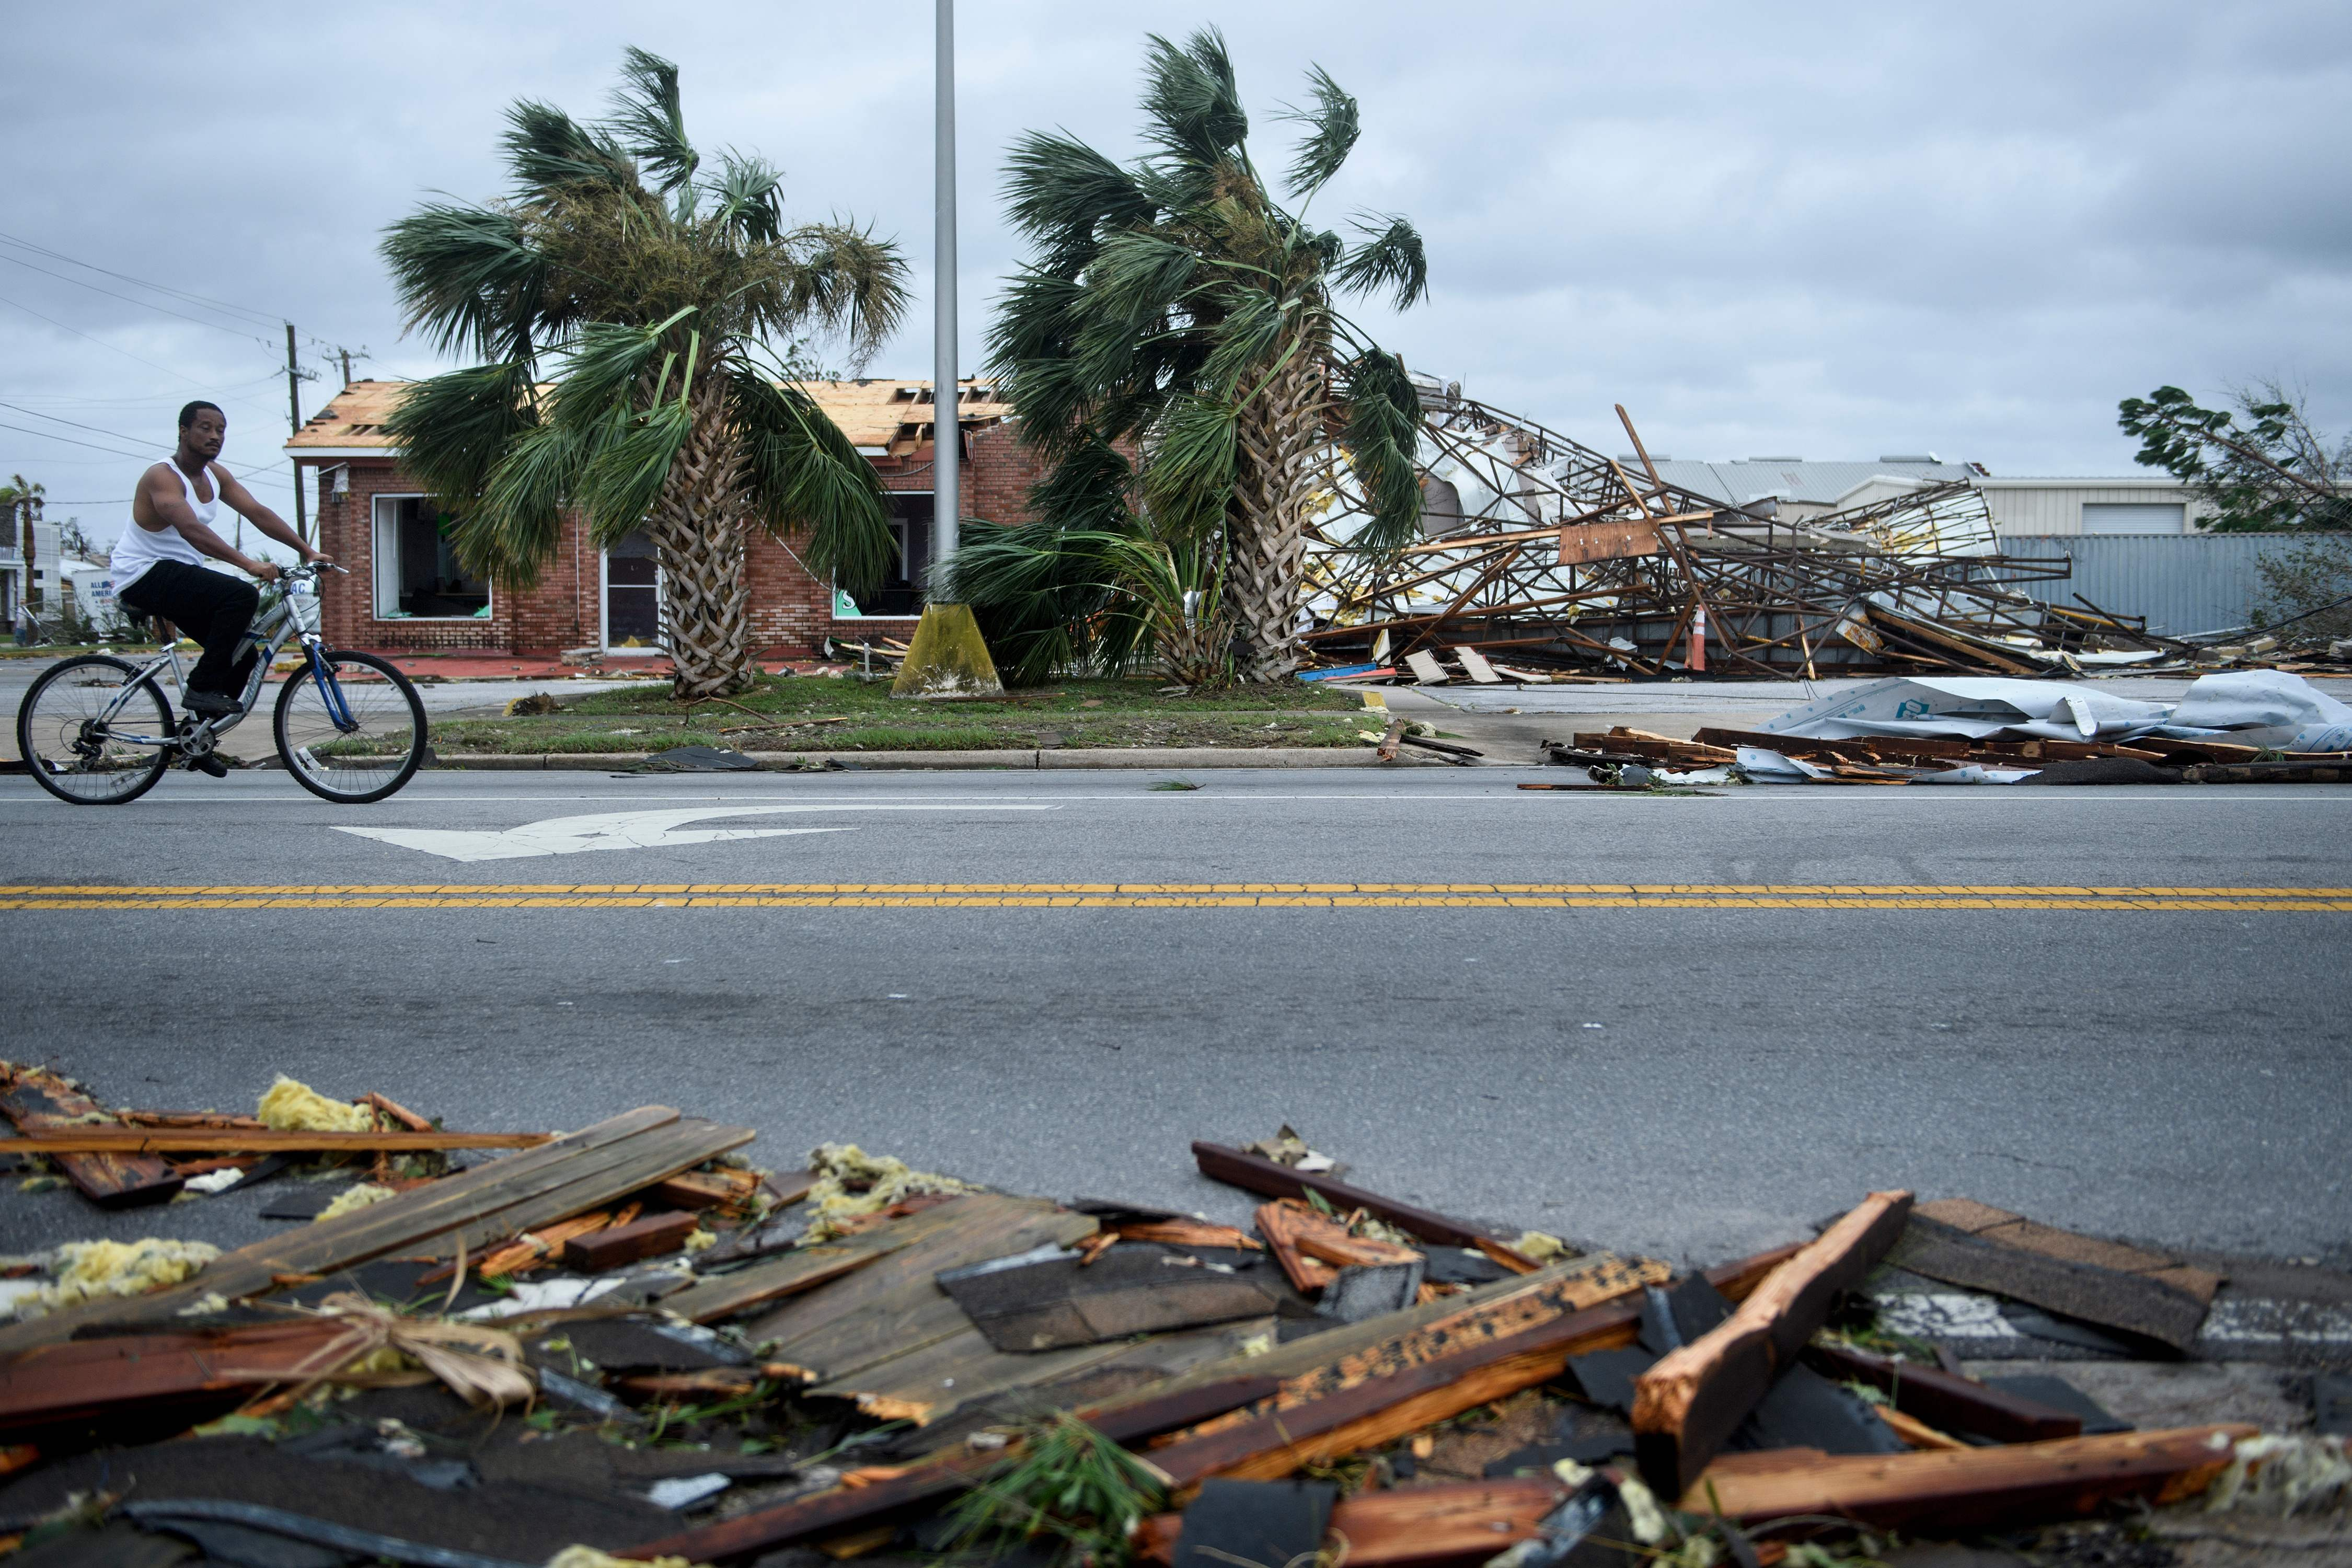 """TOPSHOT - Storm damage is seen after Hurricane Michael in Panama City, Florida on October 10, 2018. - Michael slammed into the Florida coast on October 10 as the most powerful storm to hit the southern US state in more than a century as officials warned it could wreak """"unimaginable devastation."""" Michael made landfall as a Category 4 storm near Mexico Beach, a town about 20 miles (32kms) southeast of Panama City, around 1:00 pm Eastern time (1700 GMT), the National Hurricane Center said. (Photo by Brendan Smialowski / AFP)BRENDAN SMIALOWSKI/AFP/Getty Images ORG XMIT: Hurricane ORIG FILE ID: AFP_19X5QL"""